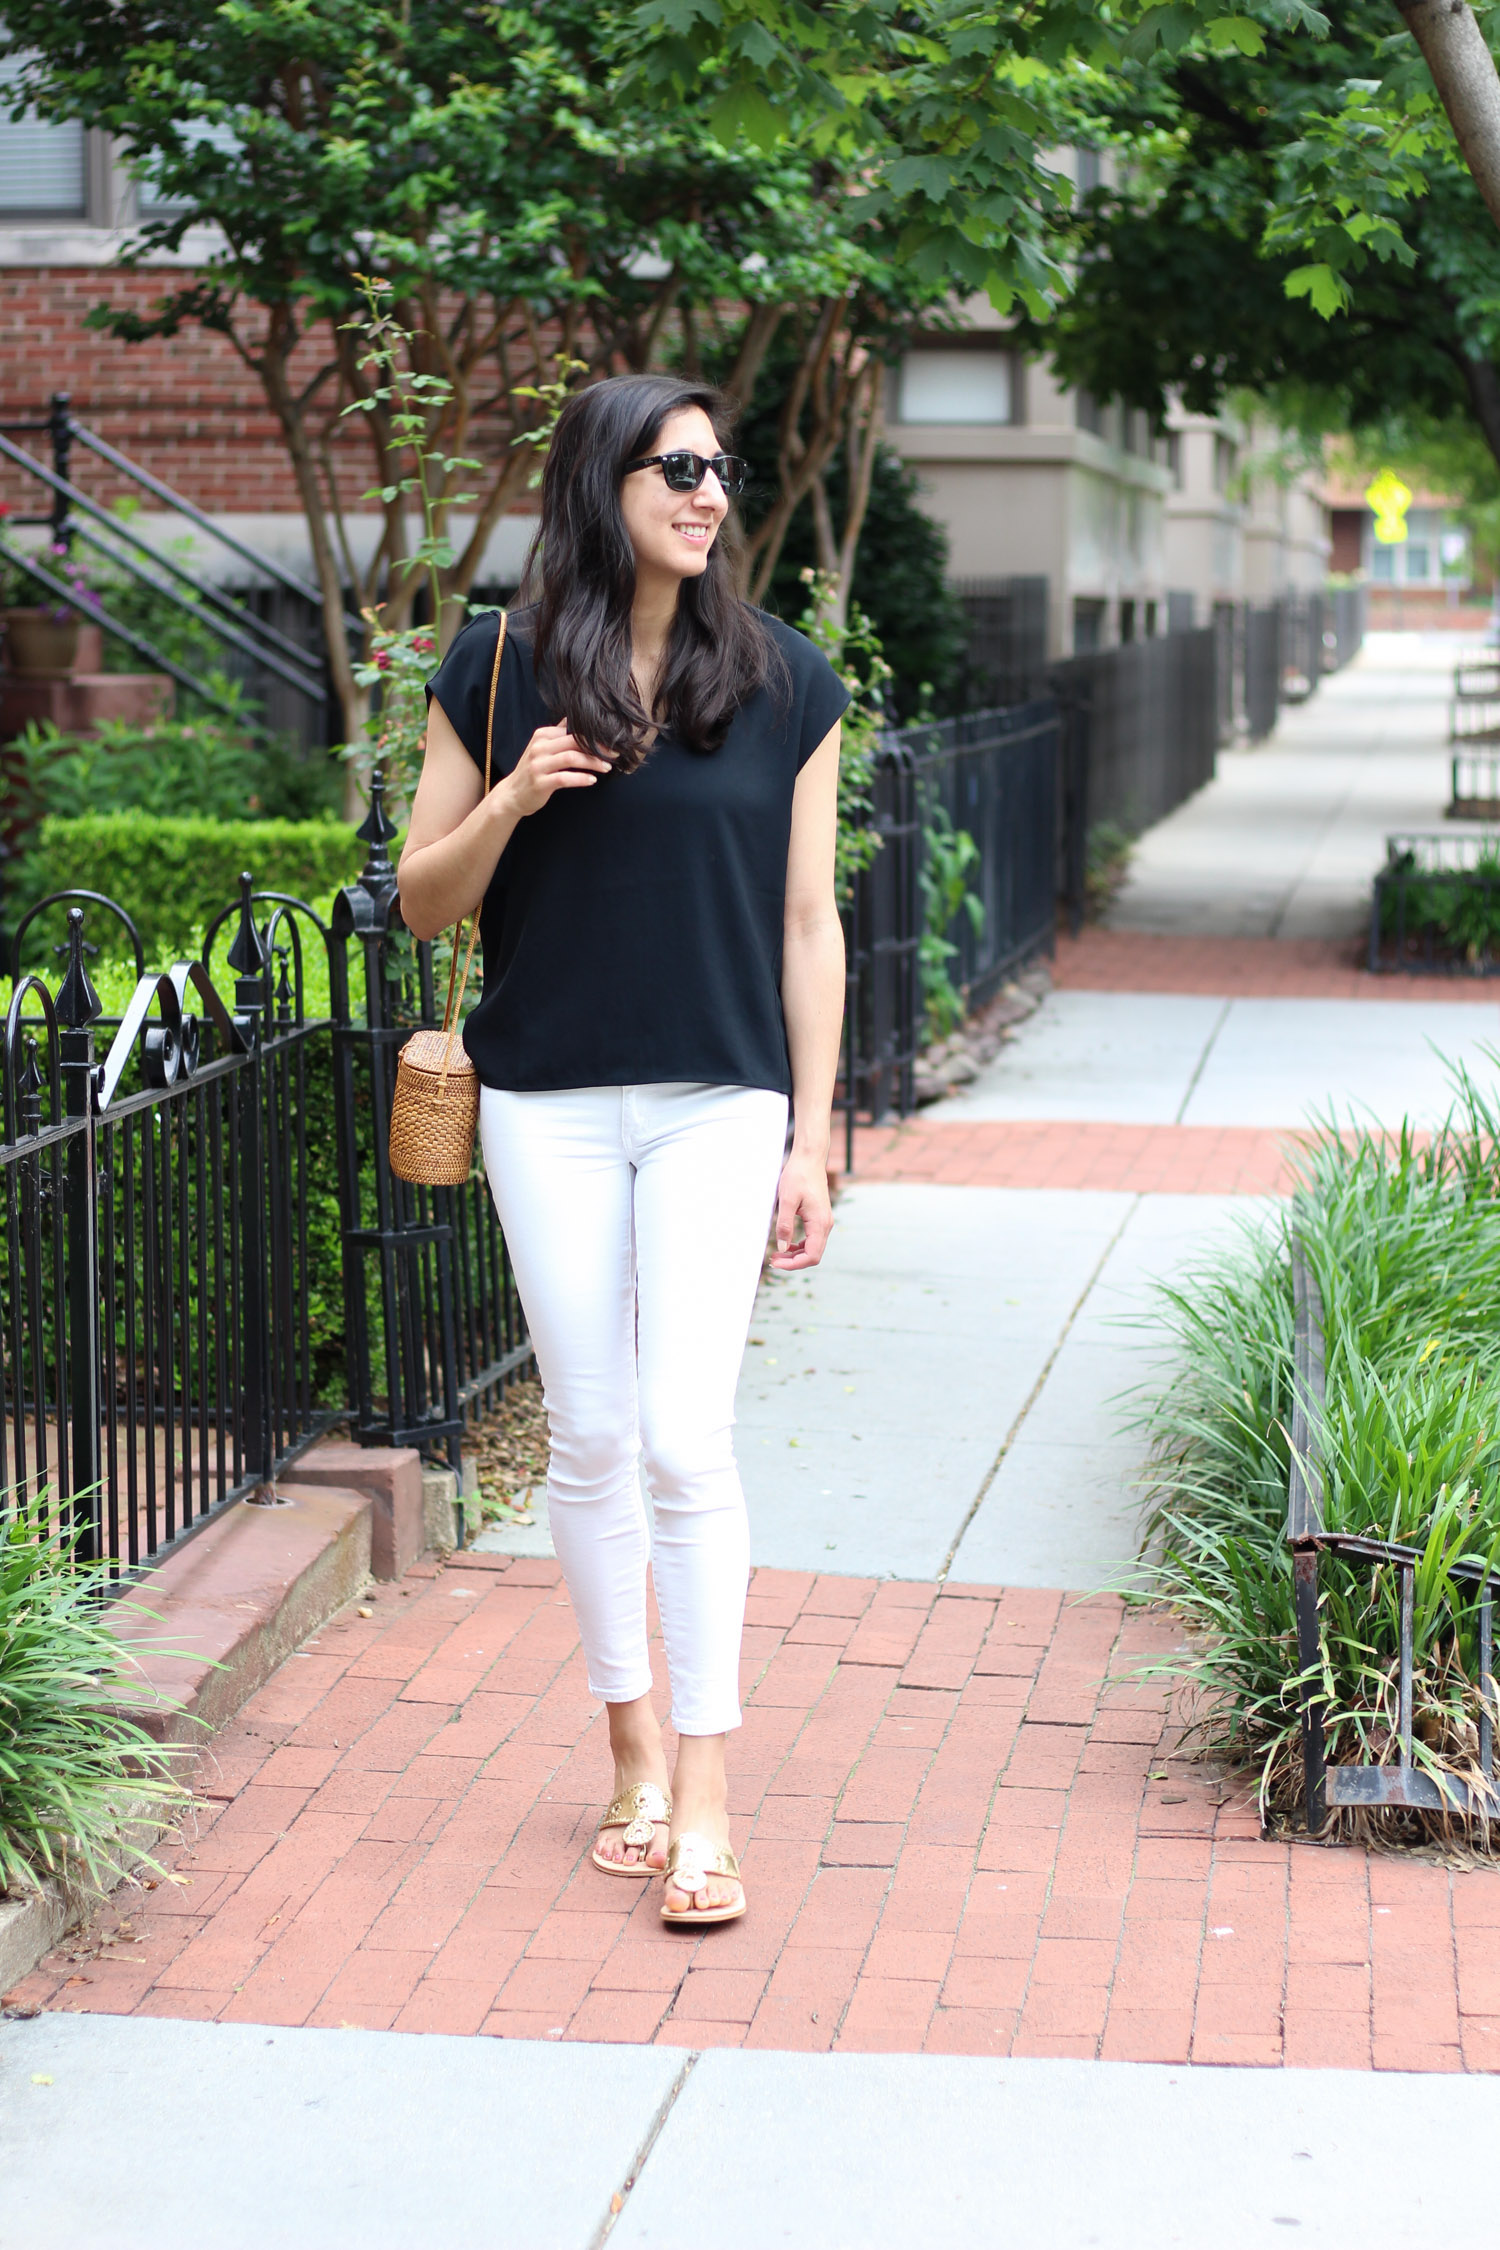 Summer style - Summer Thoughts + Style featured by popular DC fashion blogger, Monica Dutia